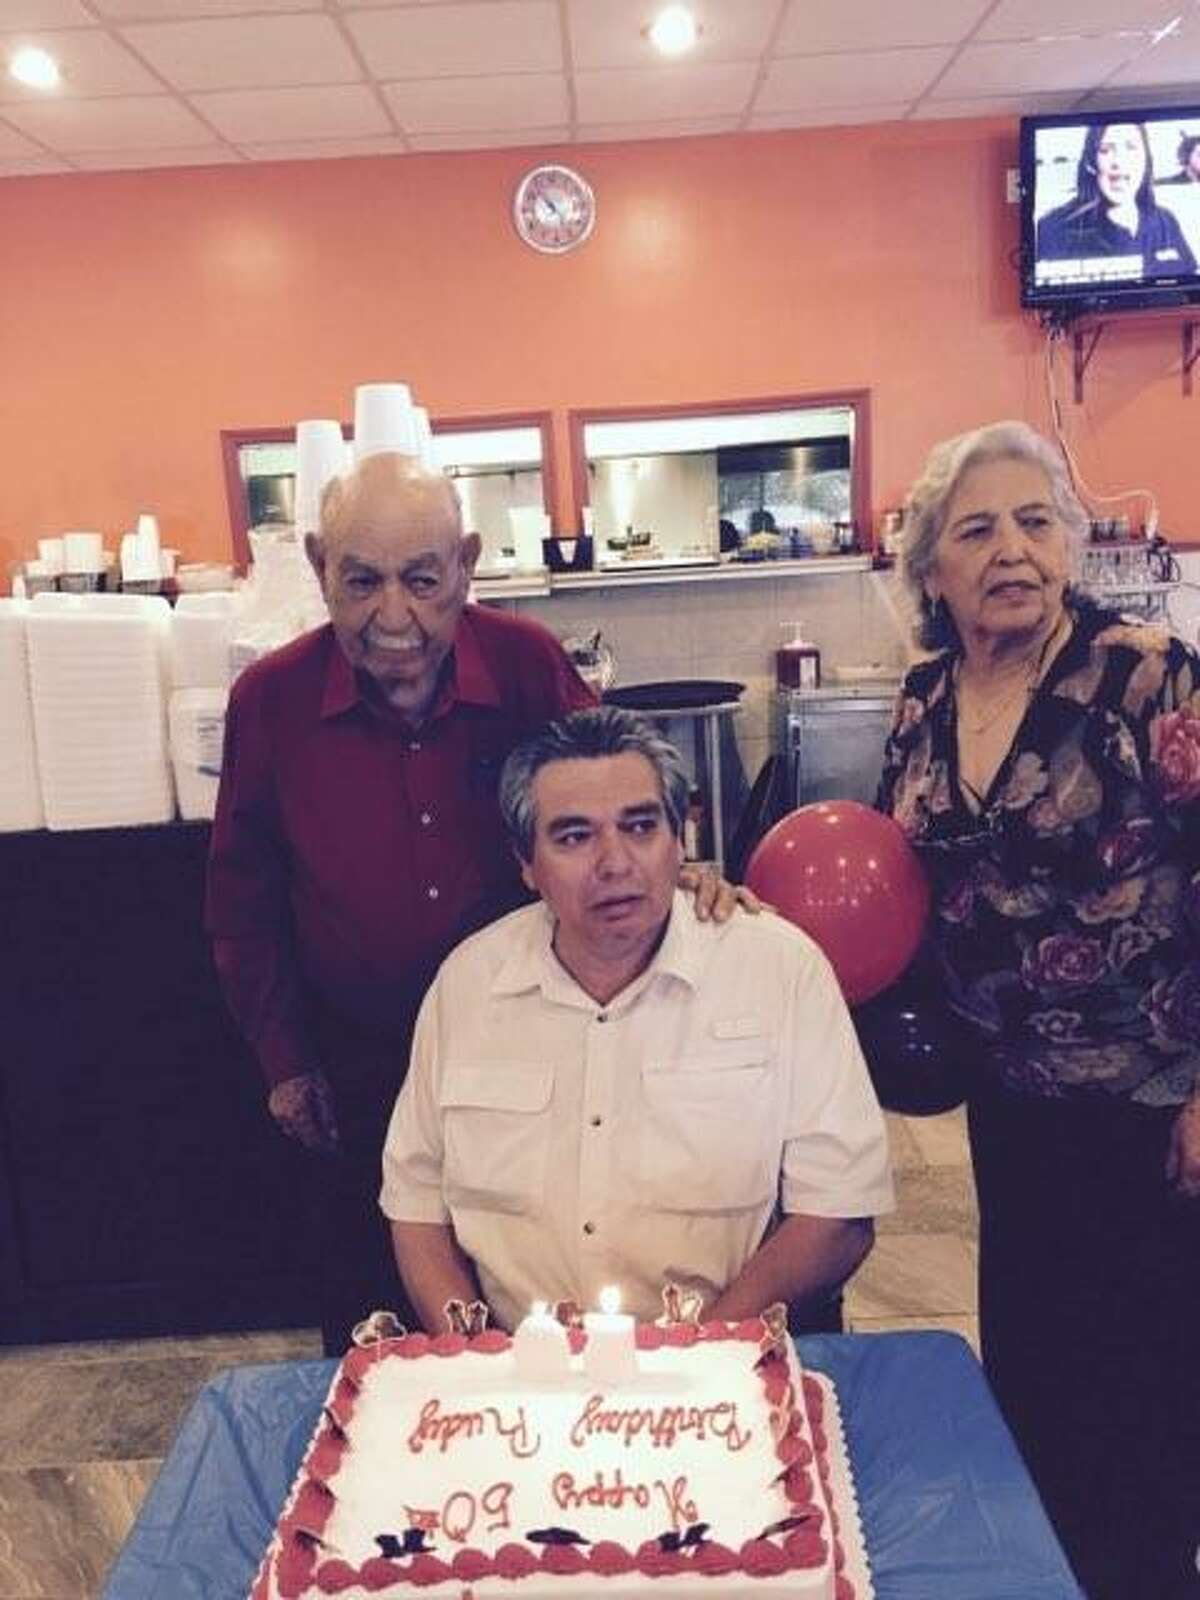 Alfonso Rodriguez and Porfiria Rodriguez celebrate their son Rudy's birthday.